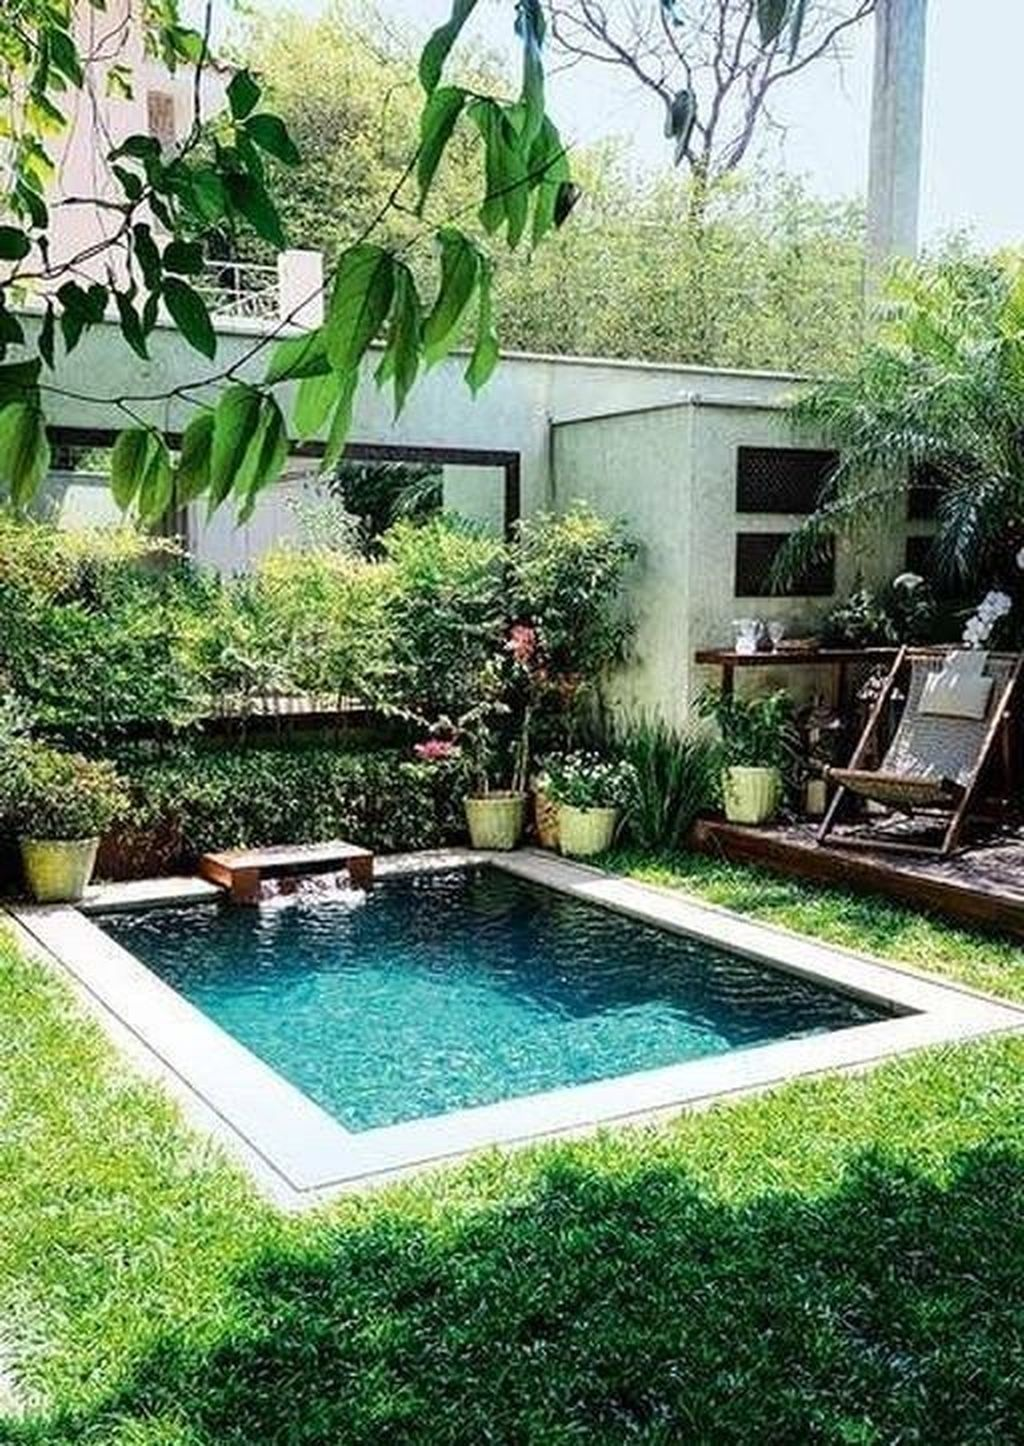 30 Amazing Natural Small Pools Design Ideas For Backyard In 2020